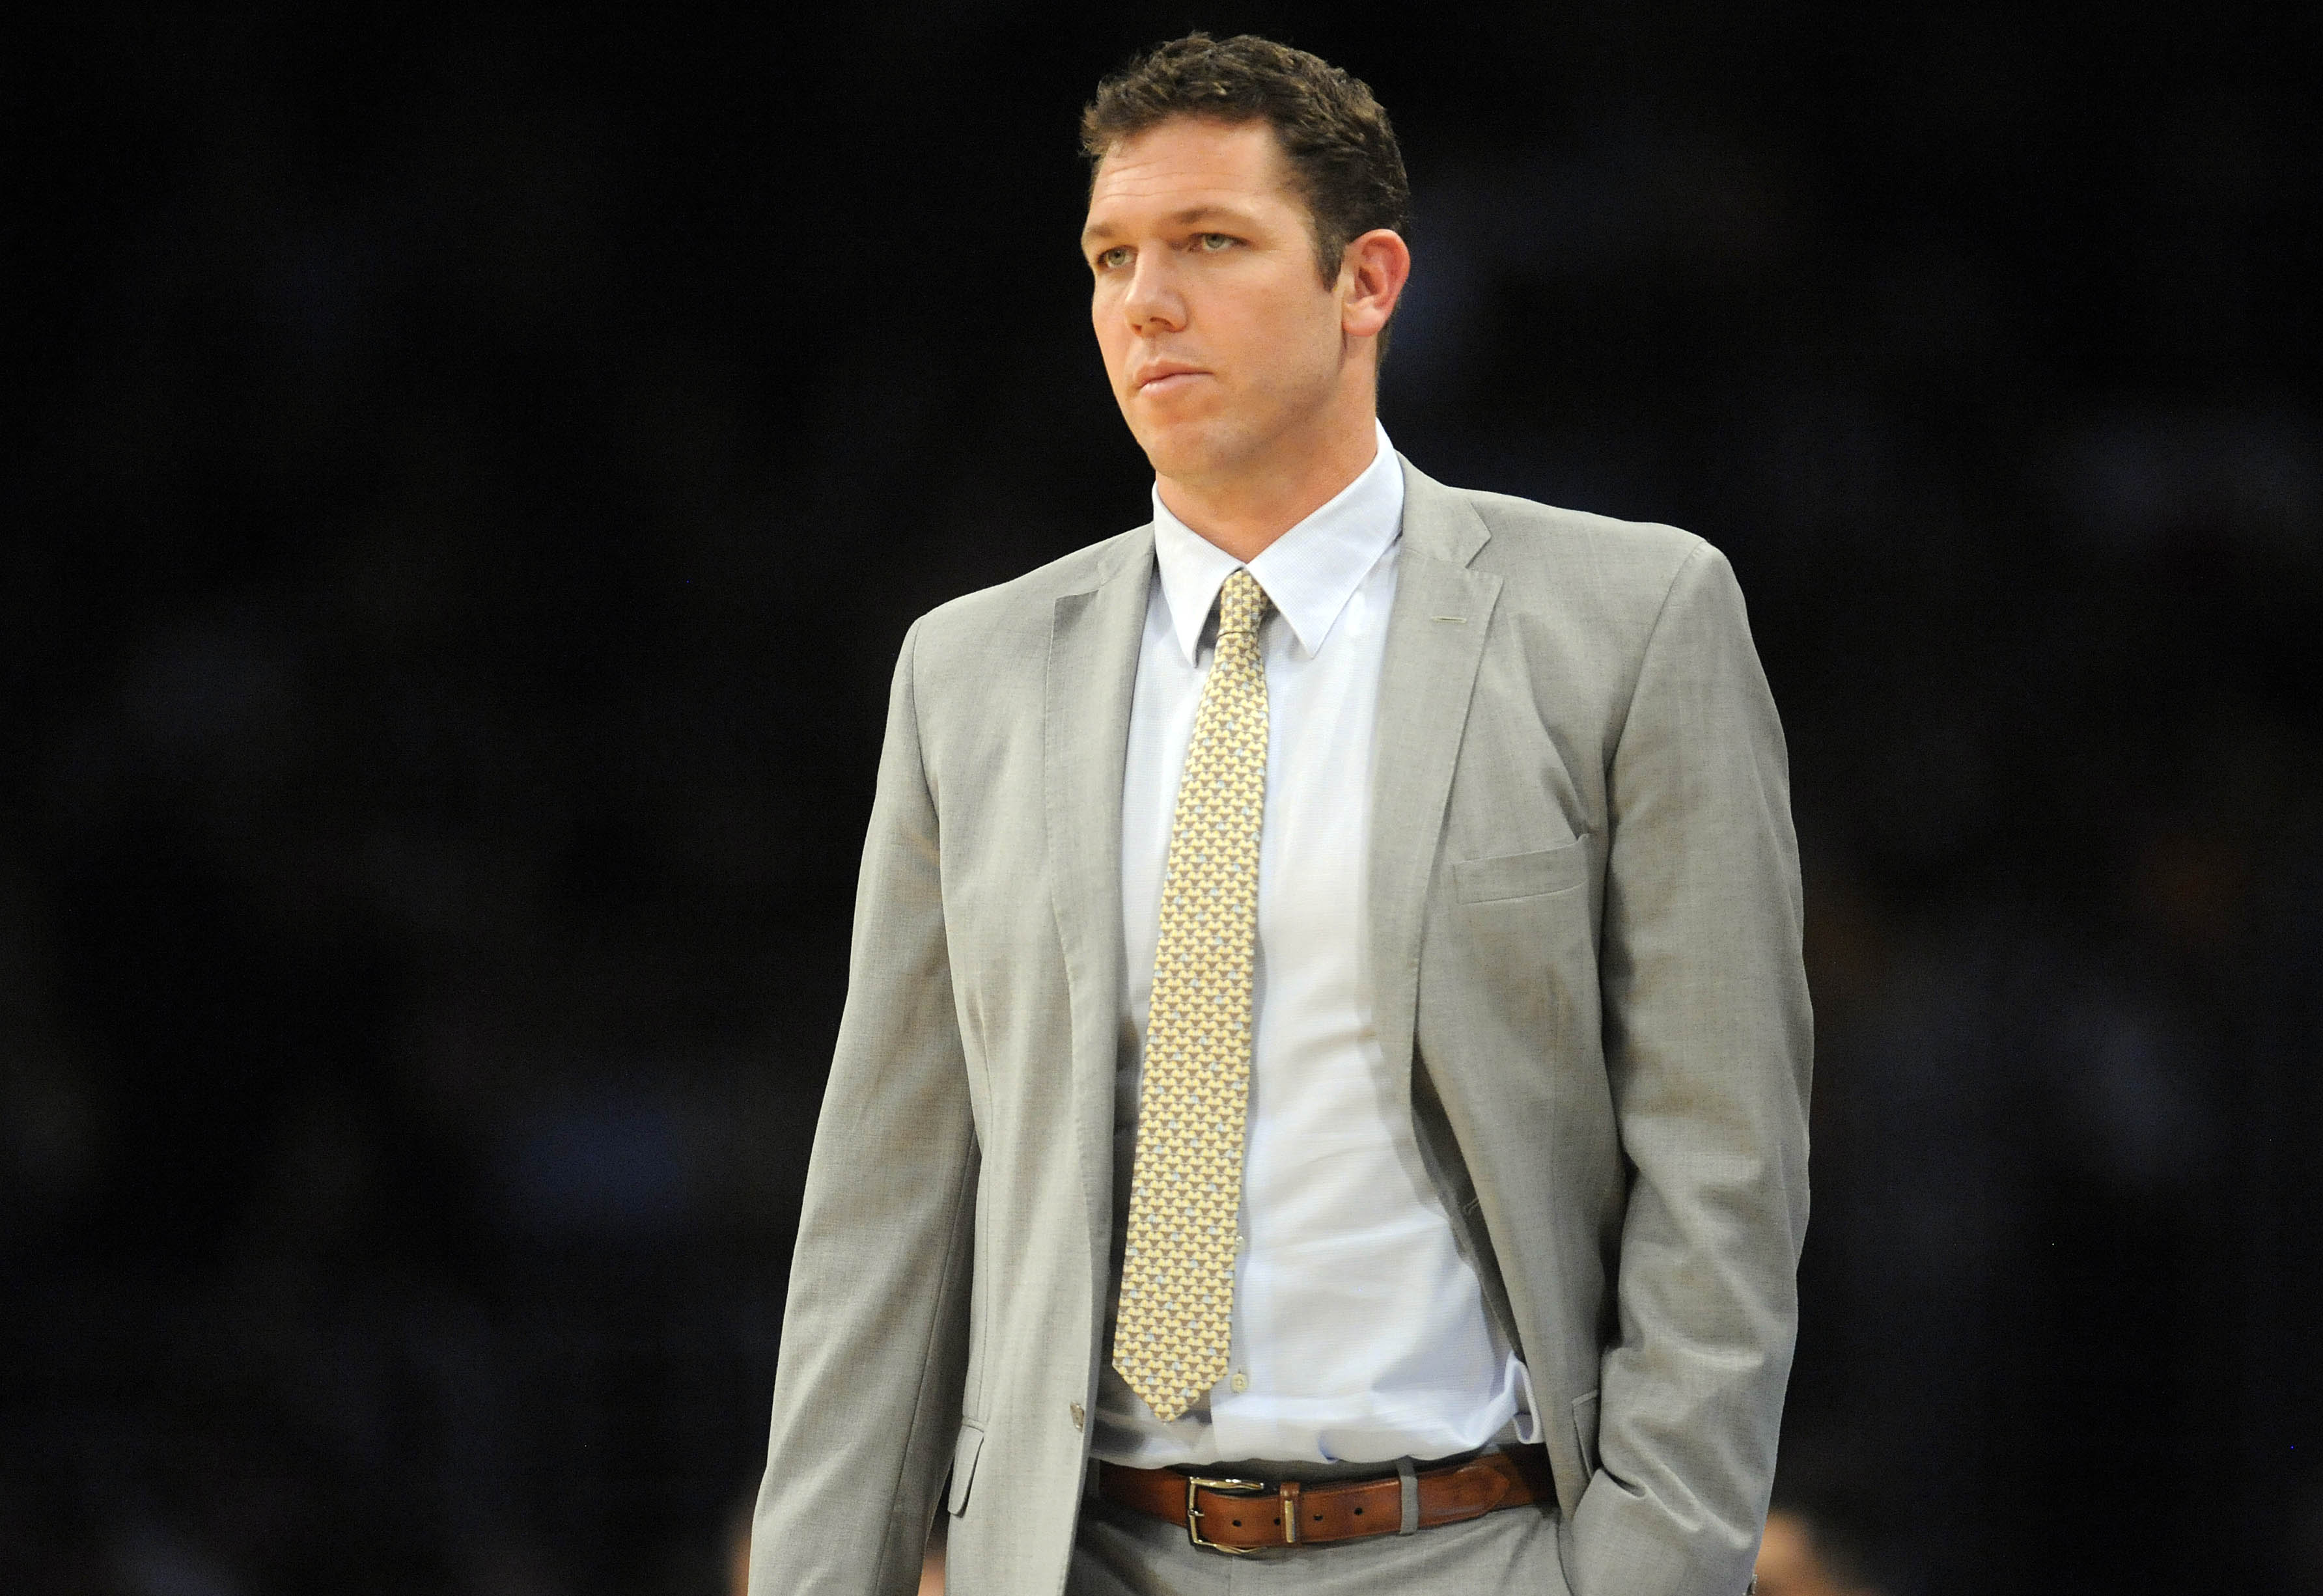 10007058-nba-new-orleans-pelicans-at-los-angeles-lakers